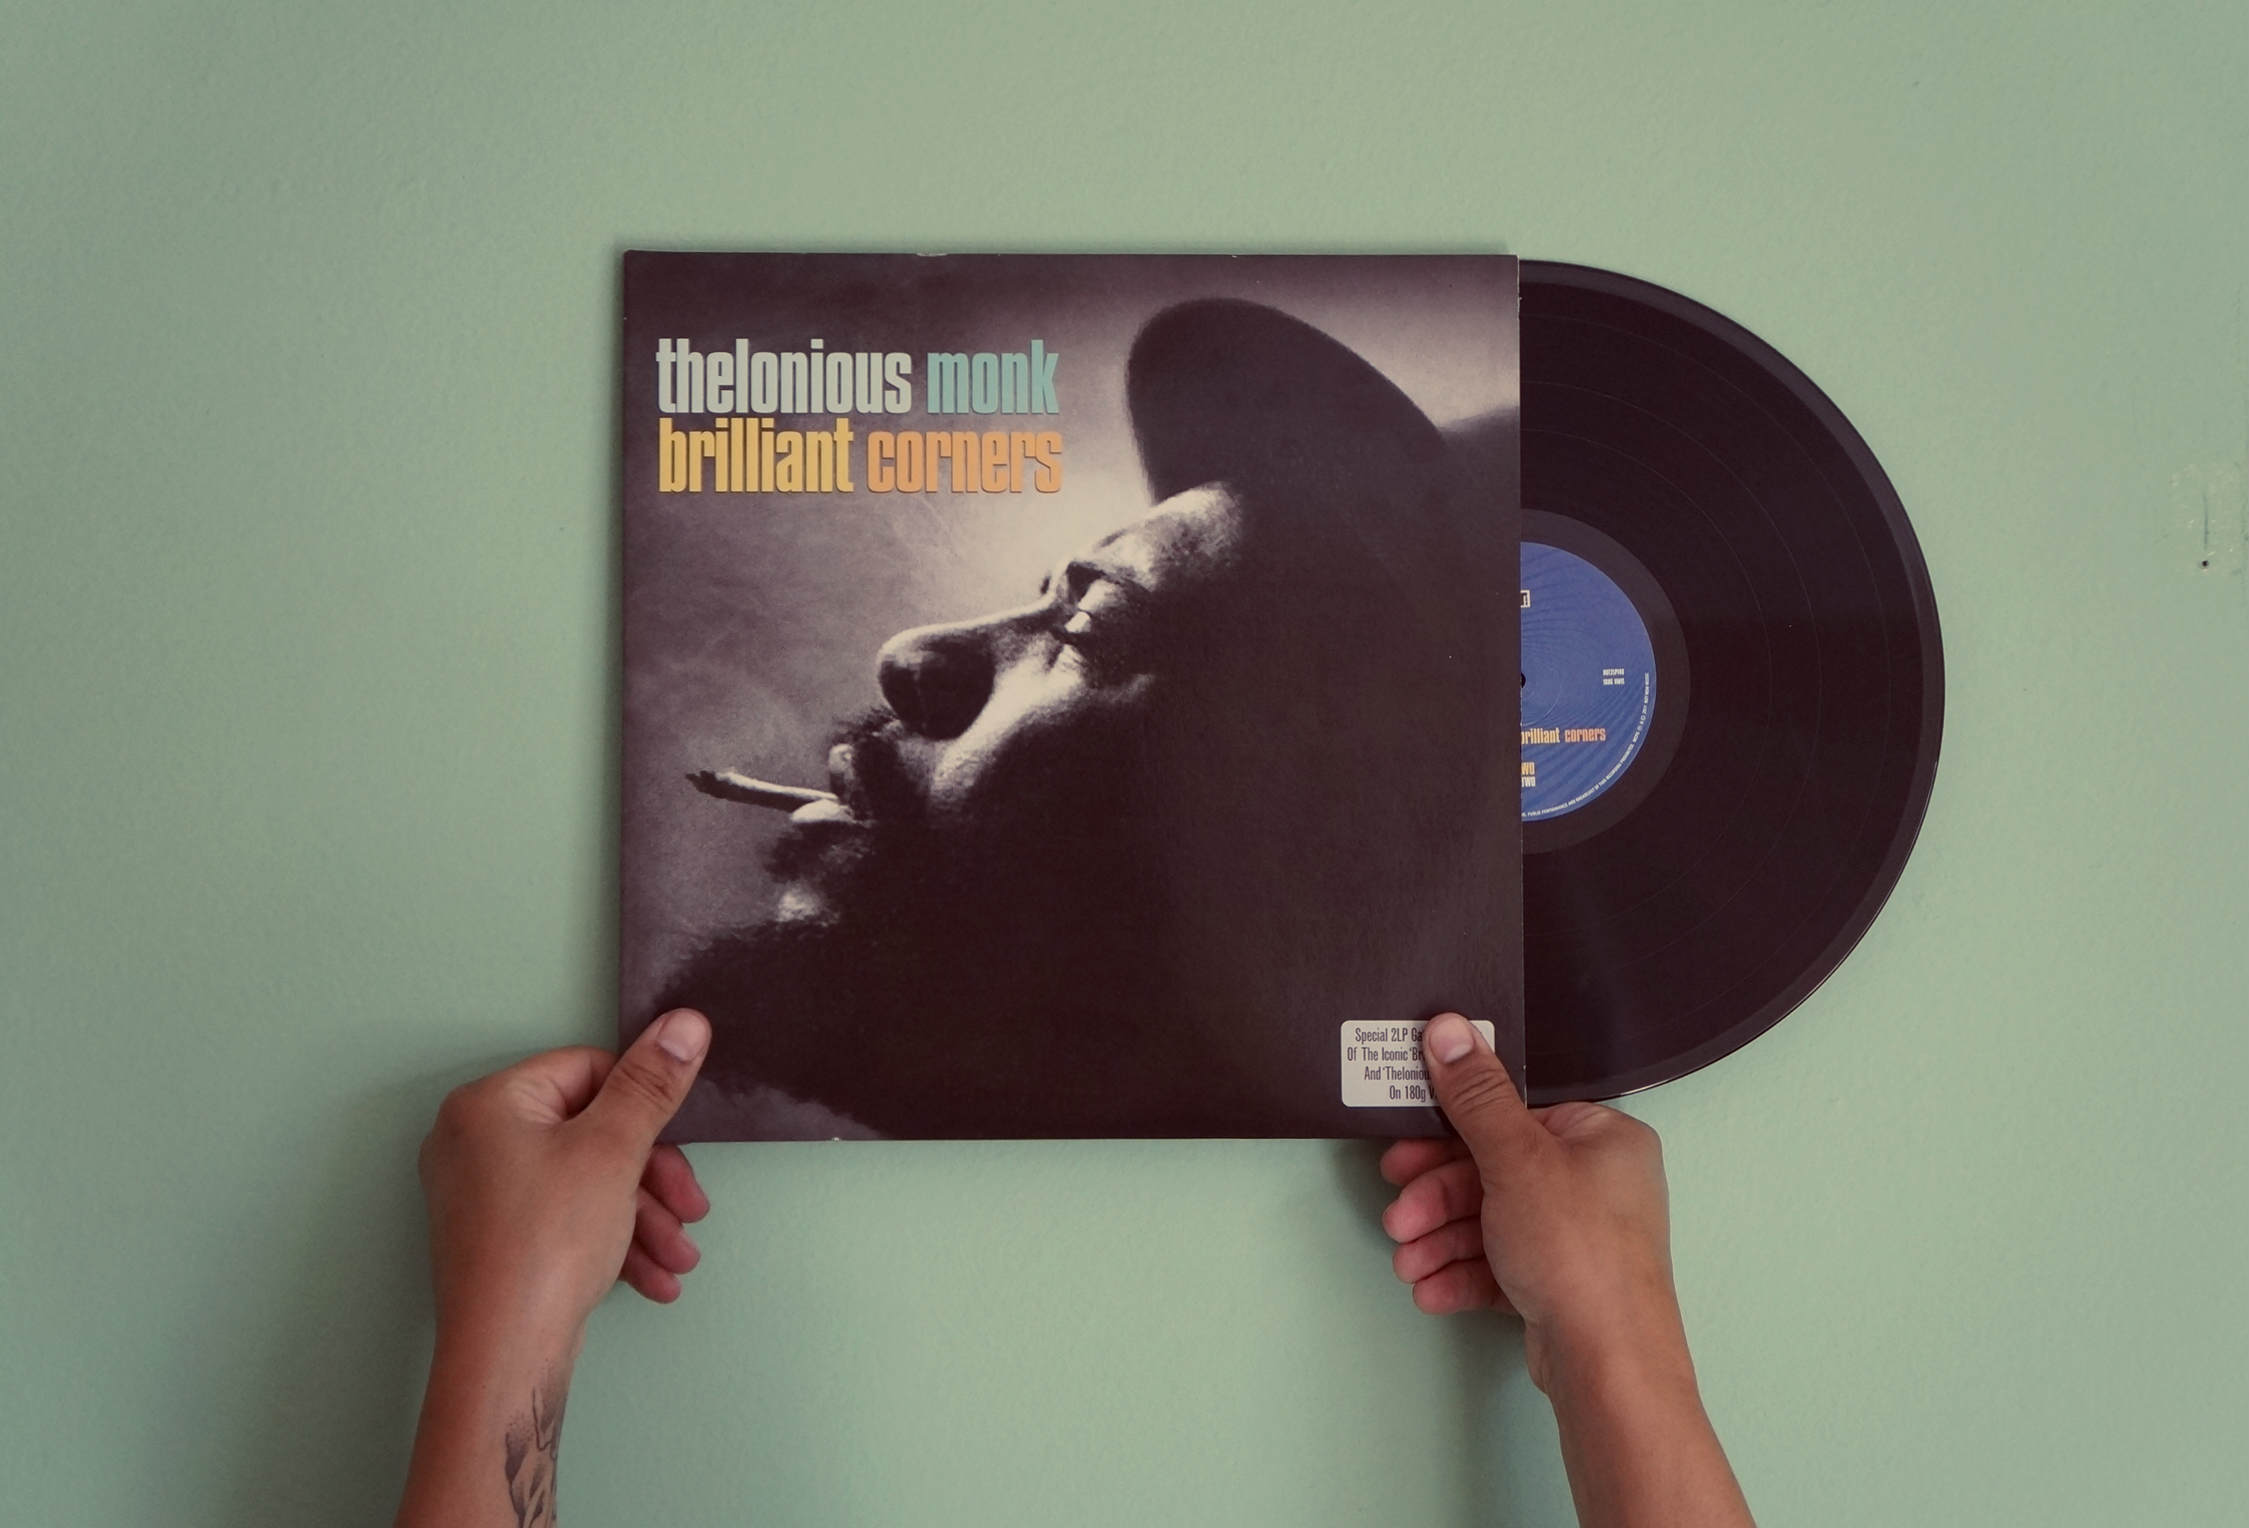 Brilliant Corners - 1957 (LP repress 2011). Foto: Sounds Like Us